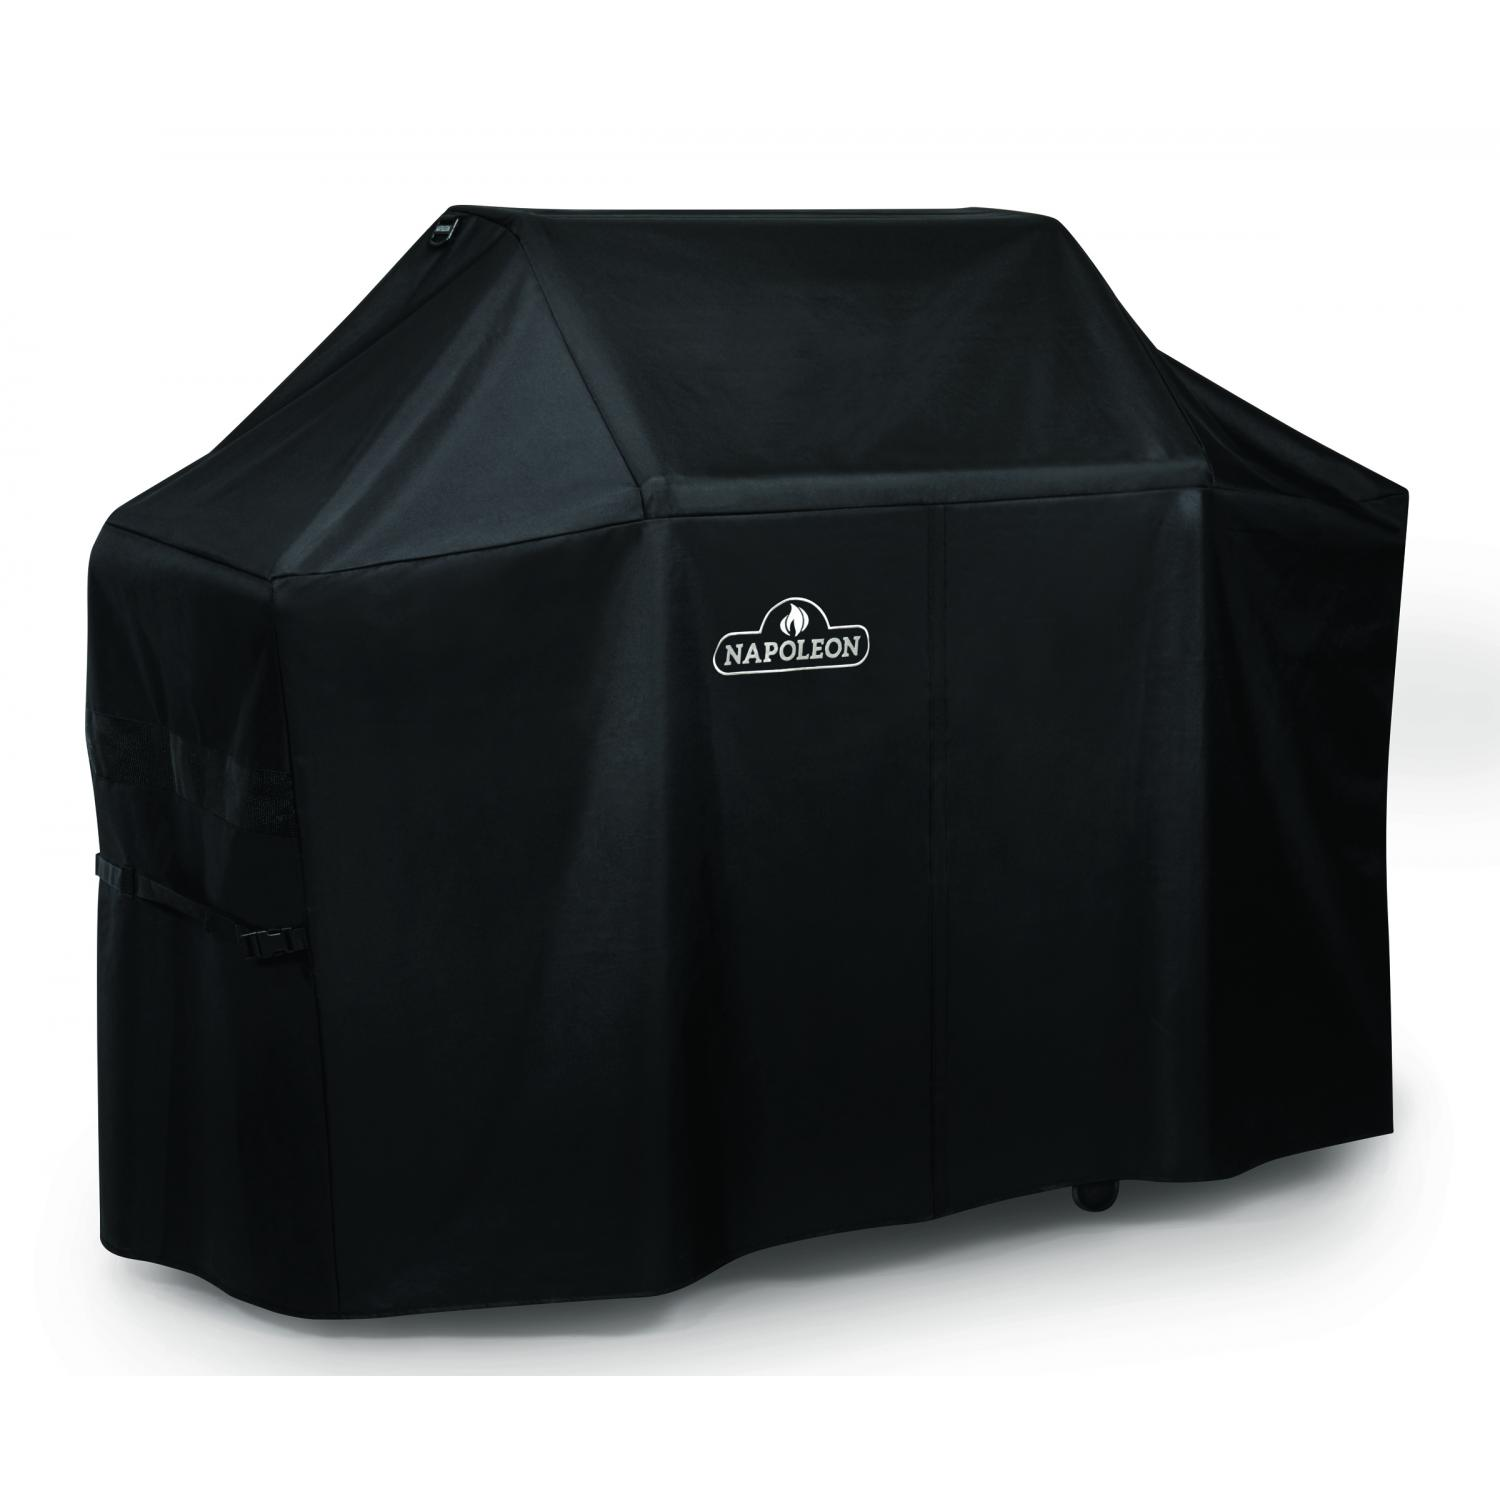 Napoleon 61500 Grill Cover for PRO 500 and Prestige 500 Series Freestanding Grills with Shelves